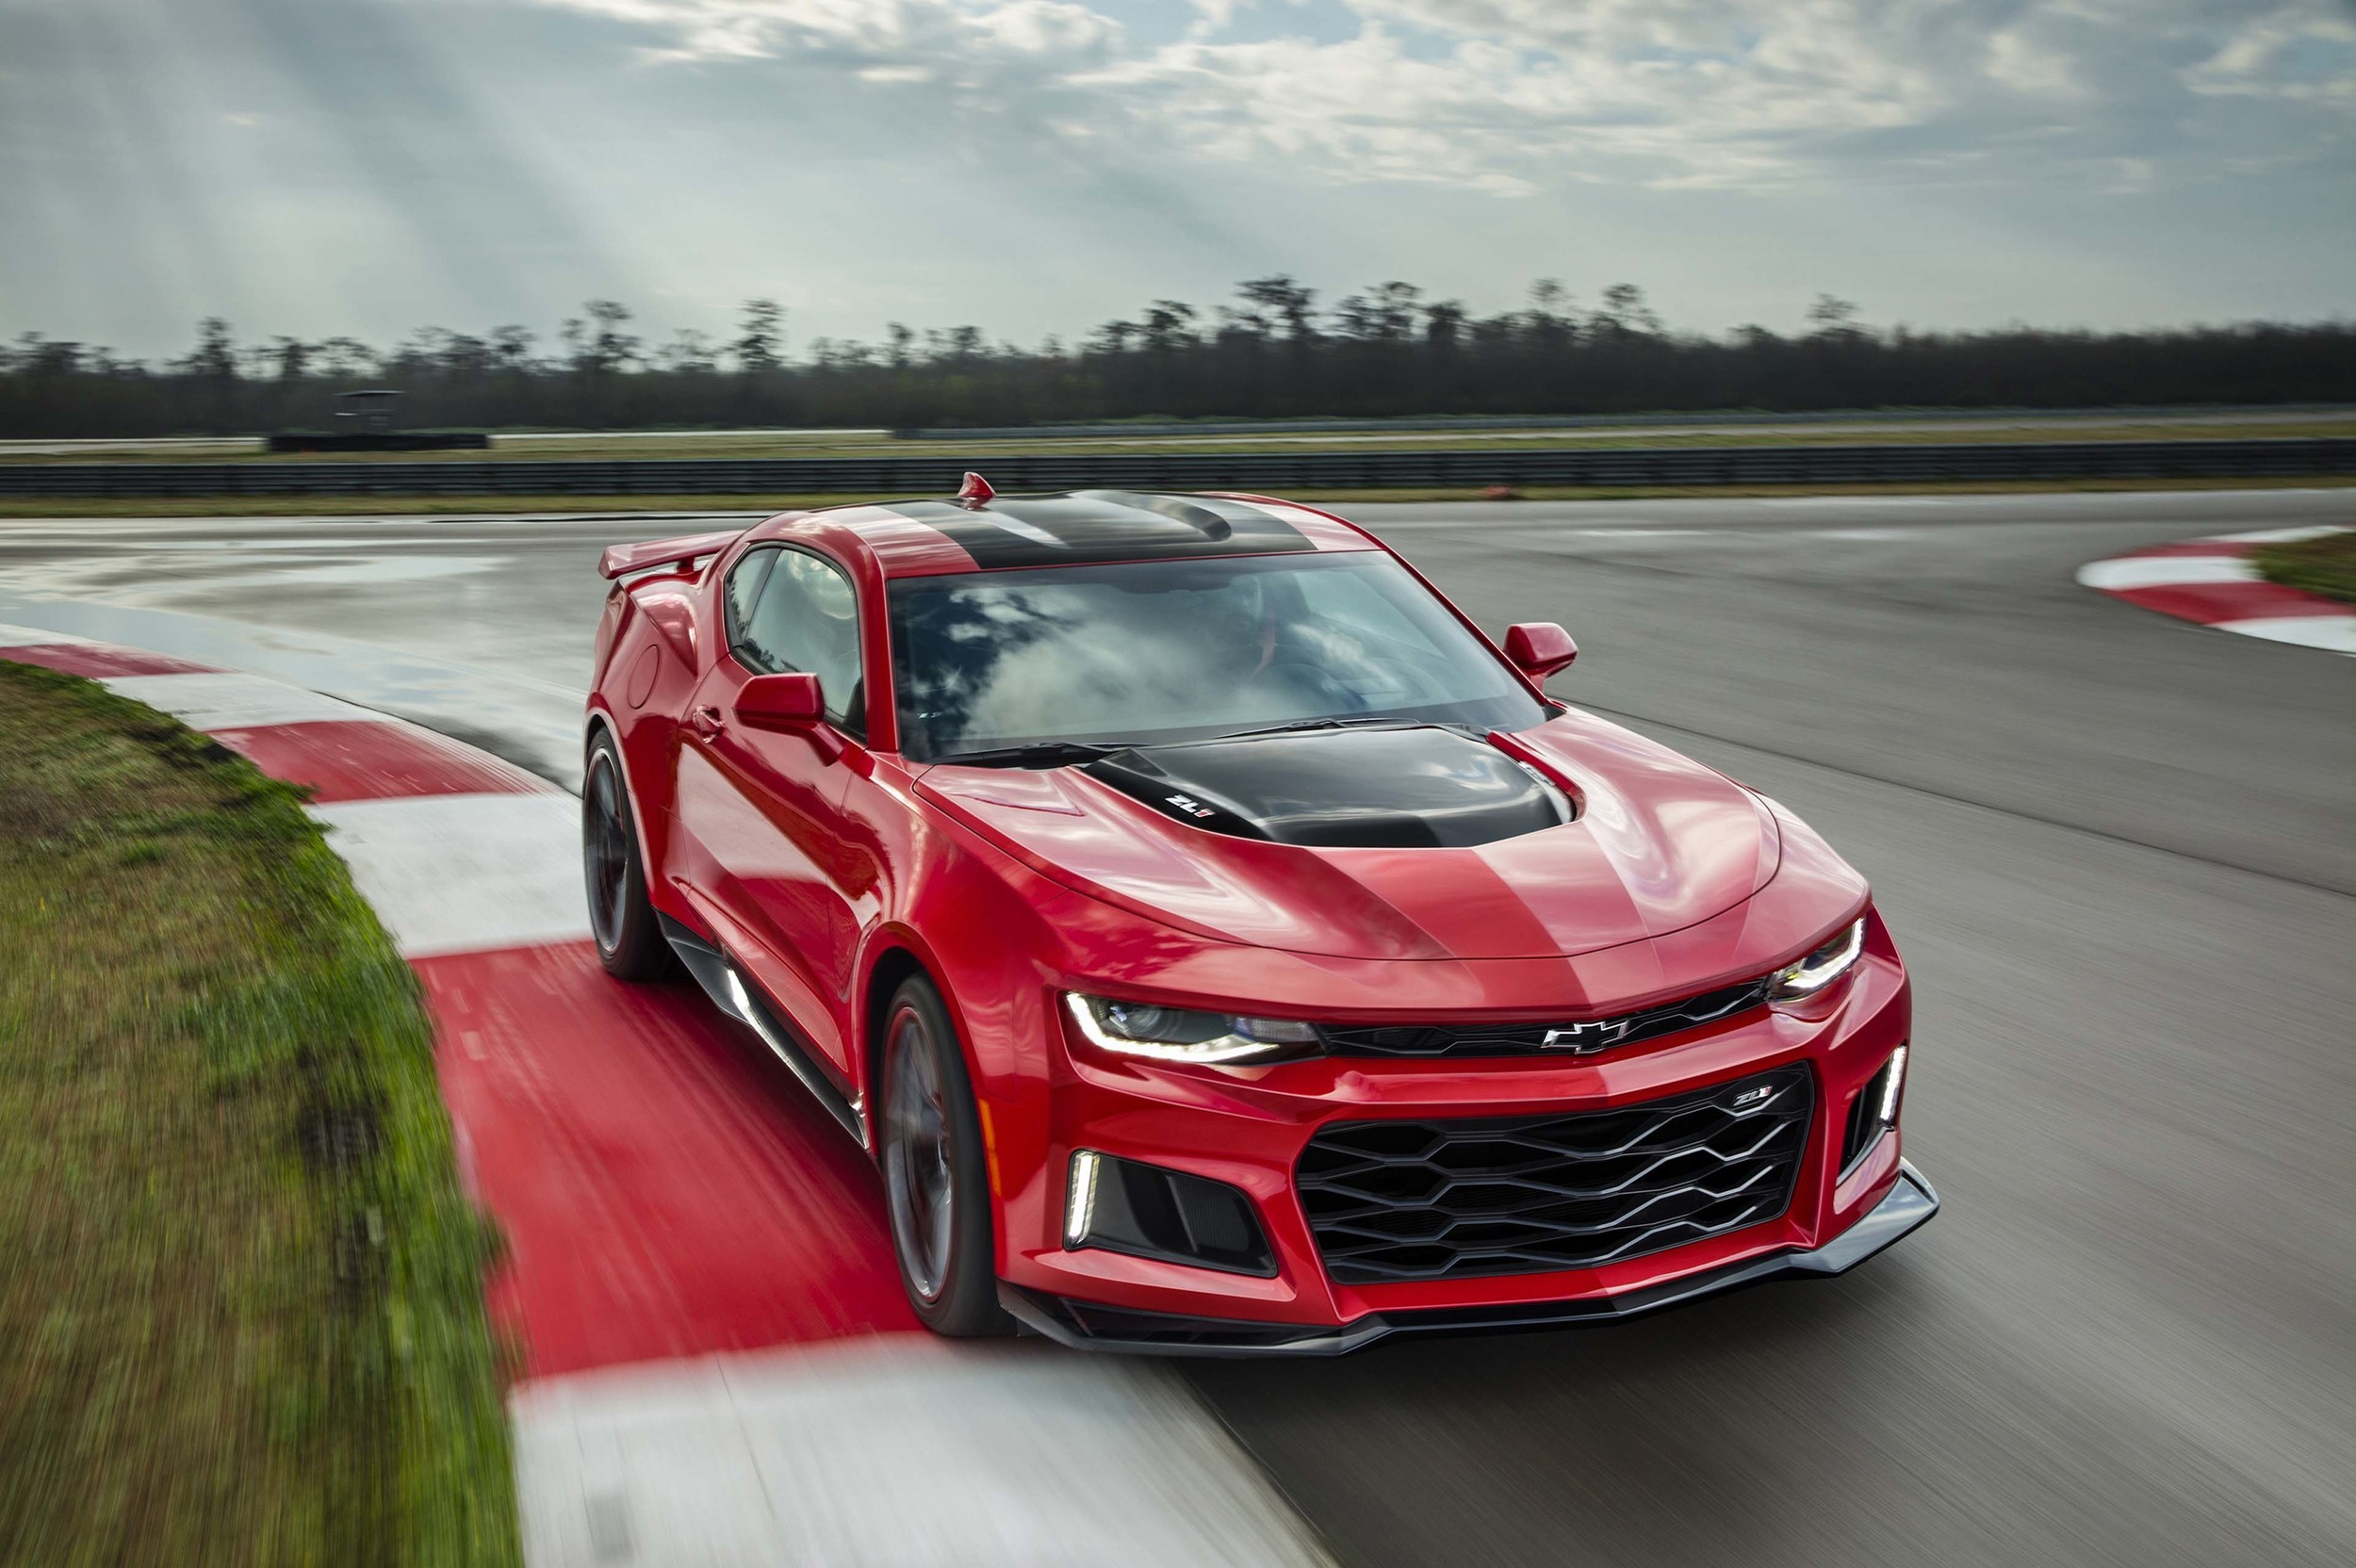 2017 chevrolet camaro zl1 has 640 hp corvette z06 supercharged v8 10 speed auto autoevolution. Black Bedroom Furniture Sets. Home Design Ideas